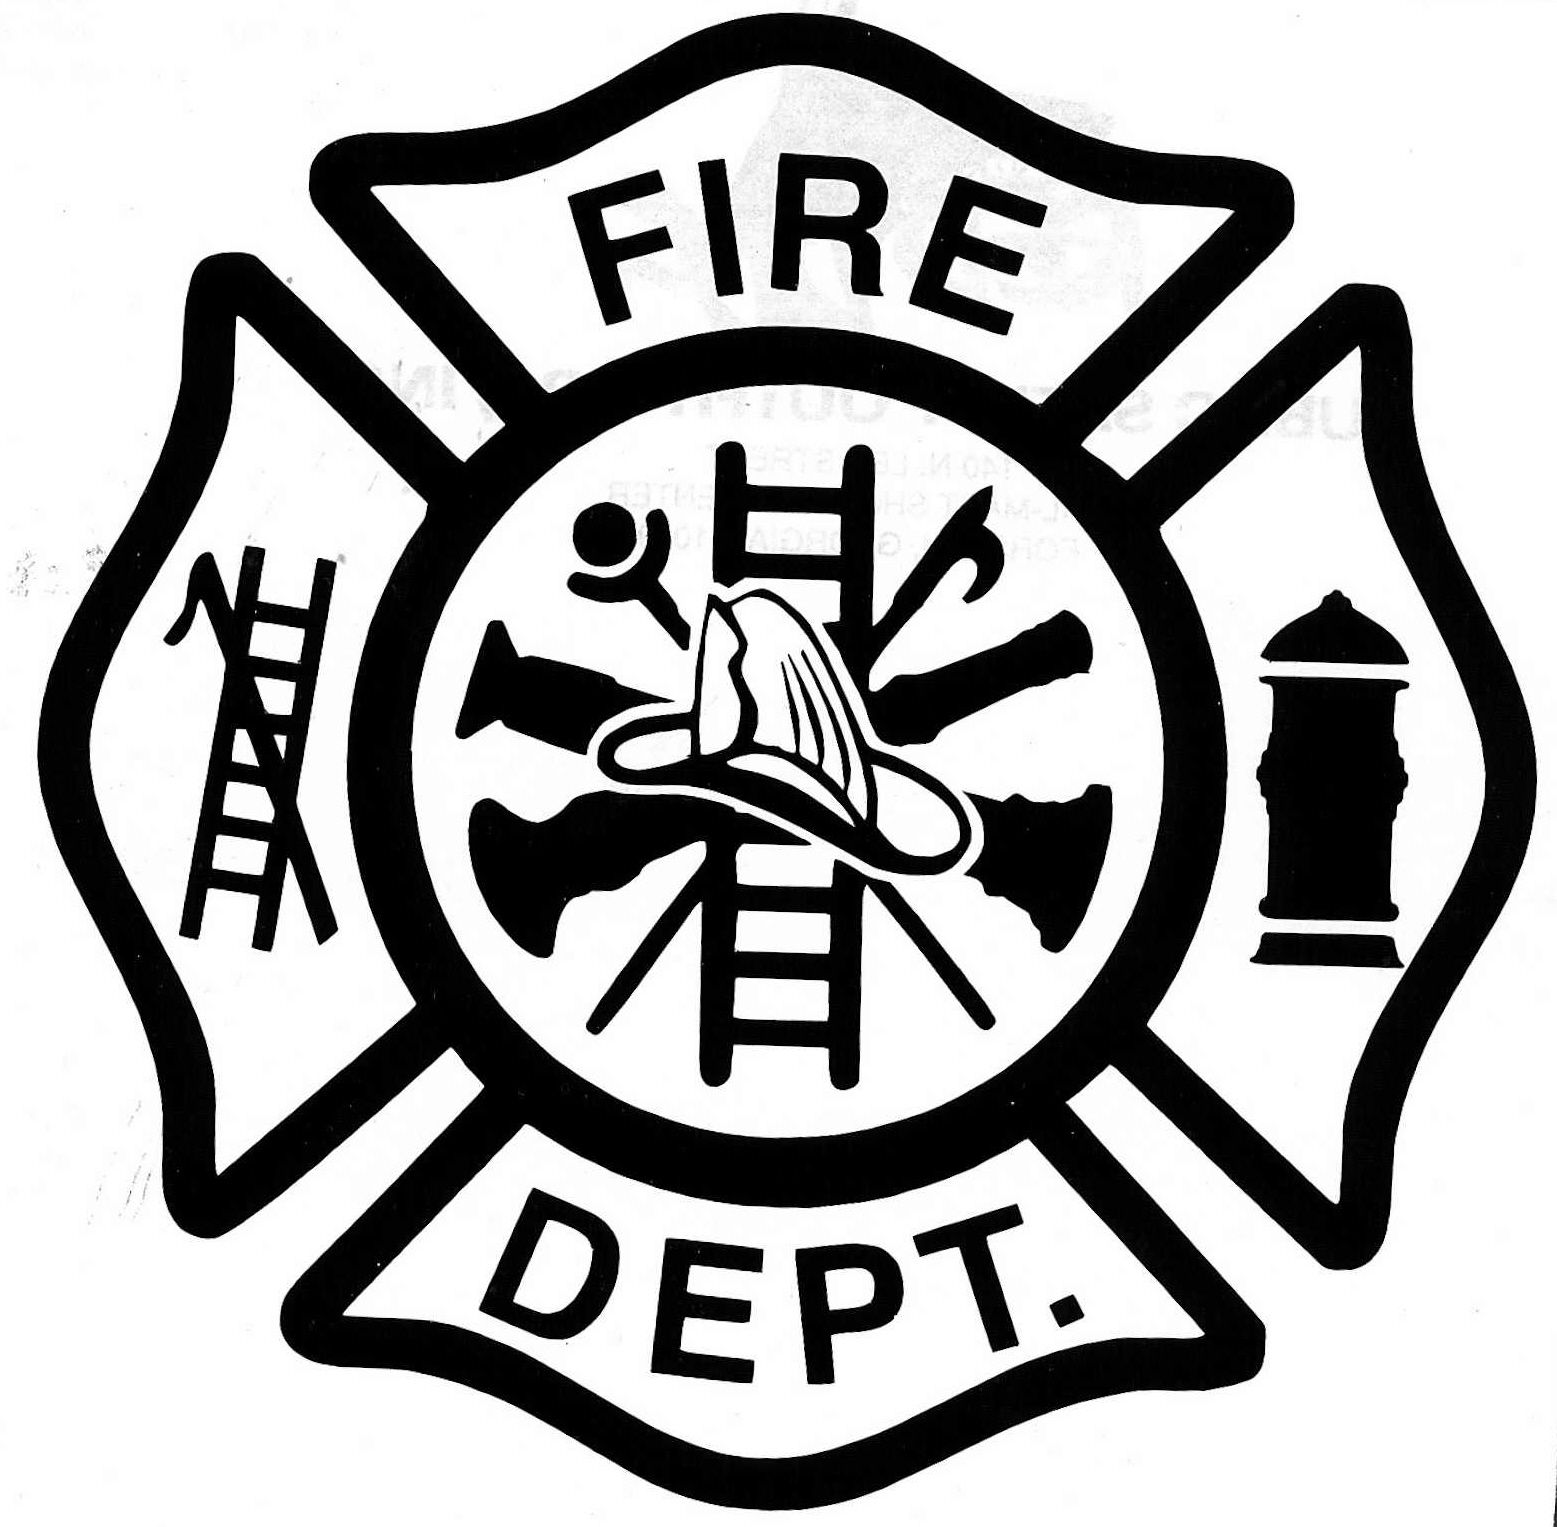 Firefighter Badge Colouring Pages | wood. | Pinterest | Firefighter ...